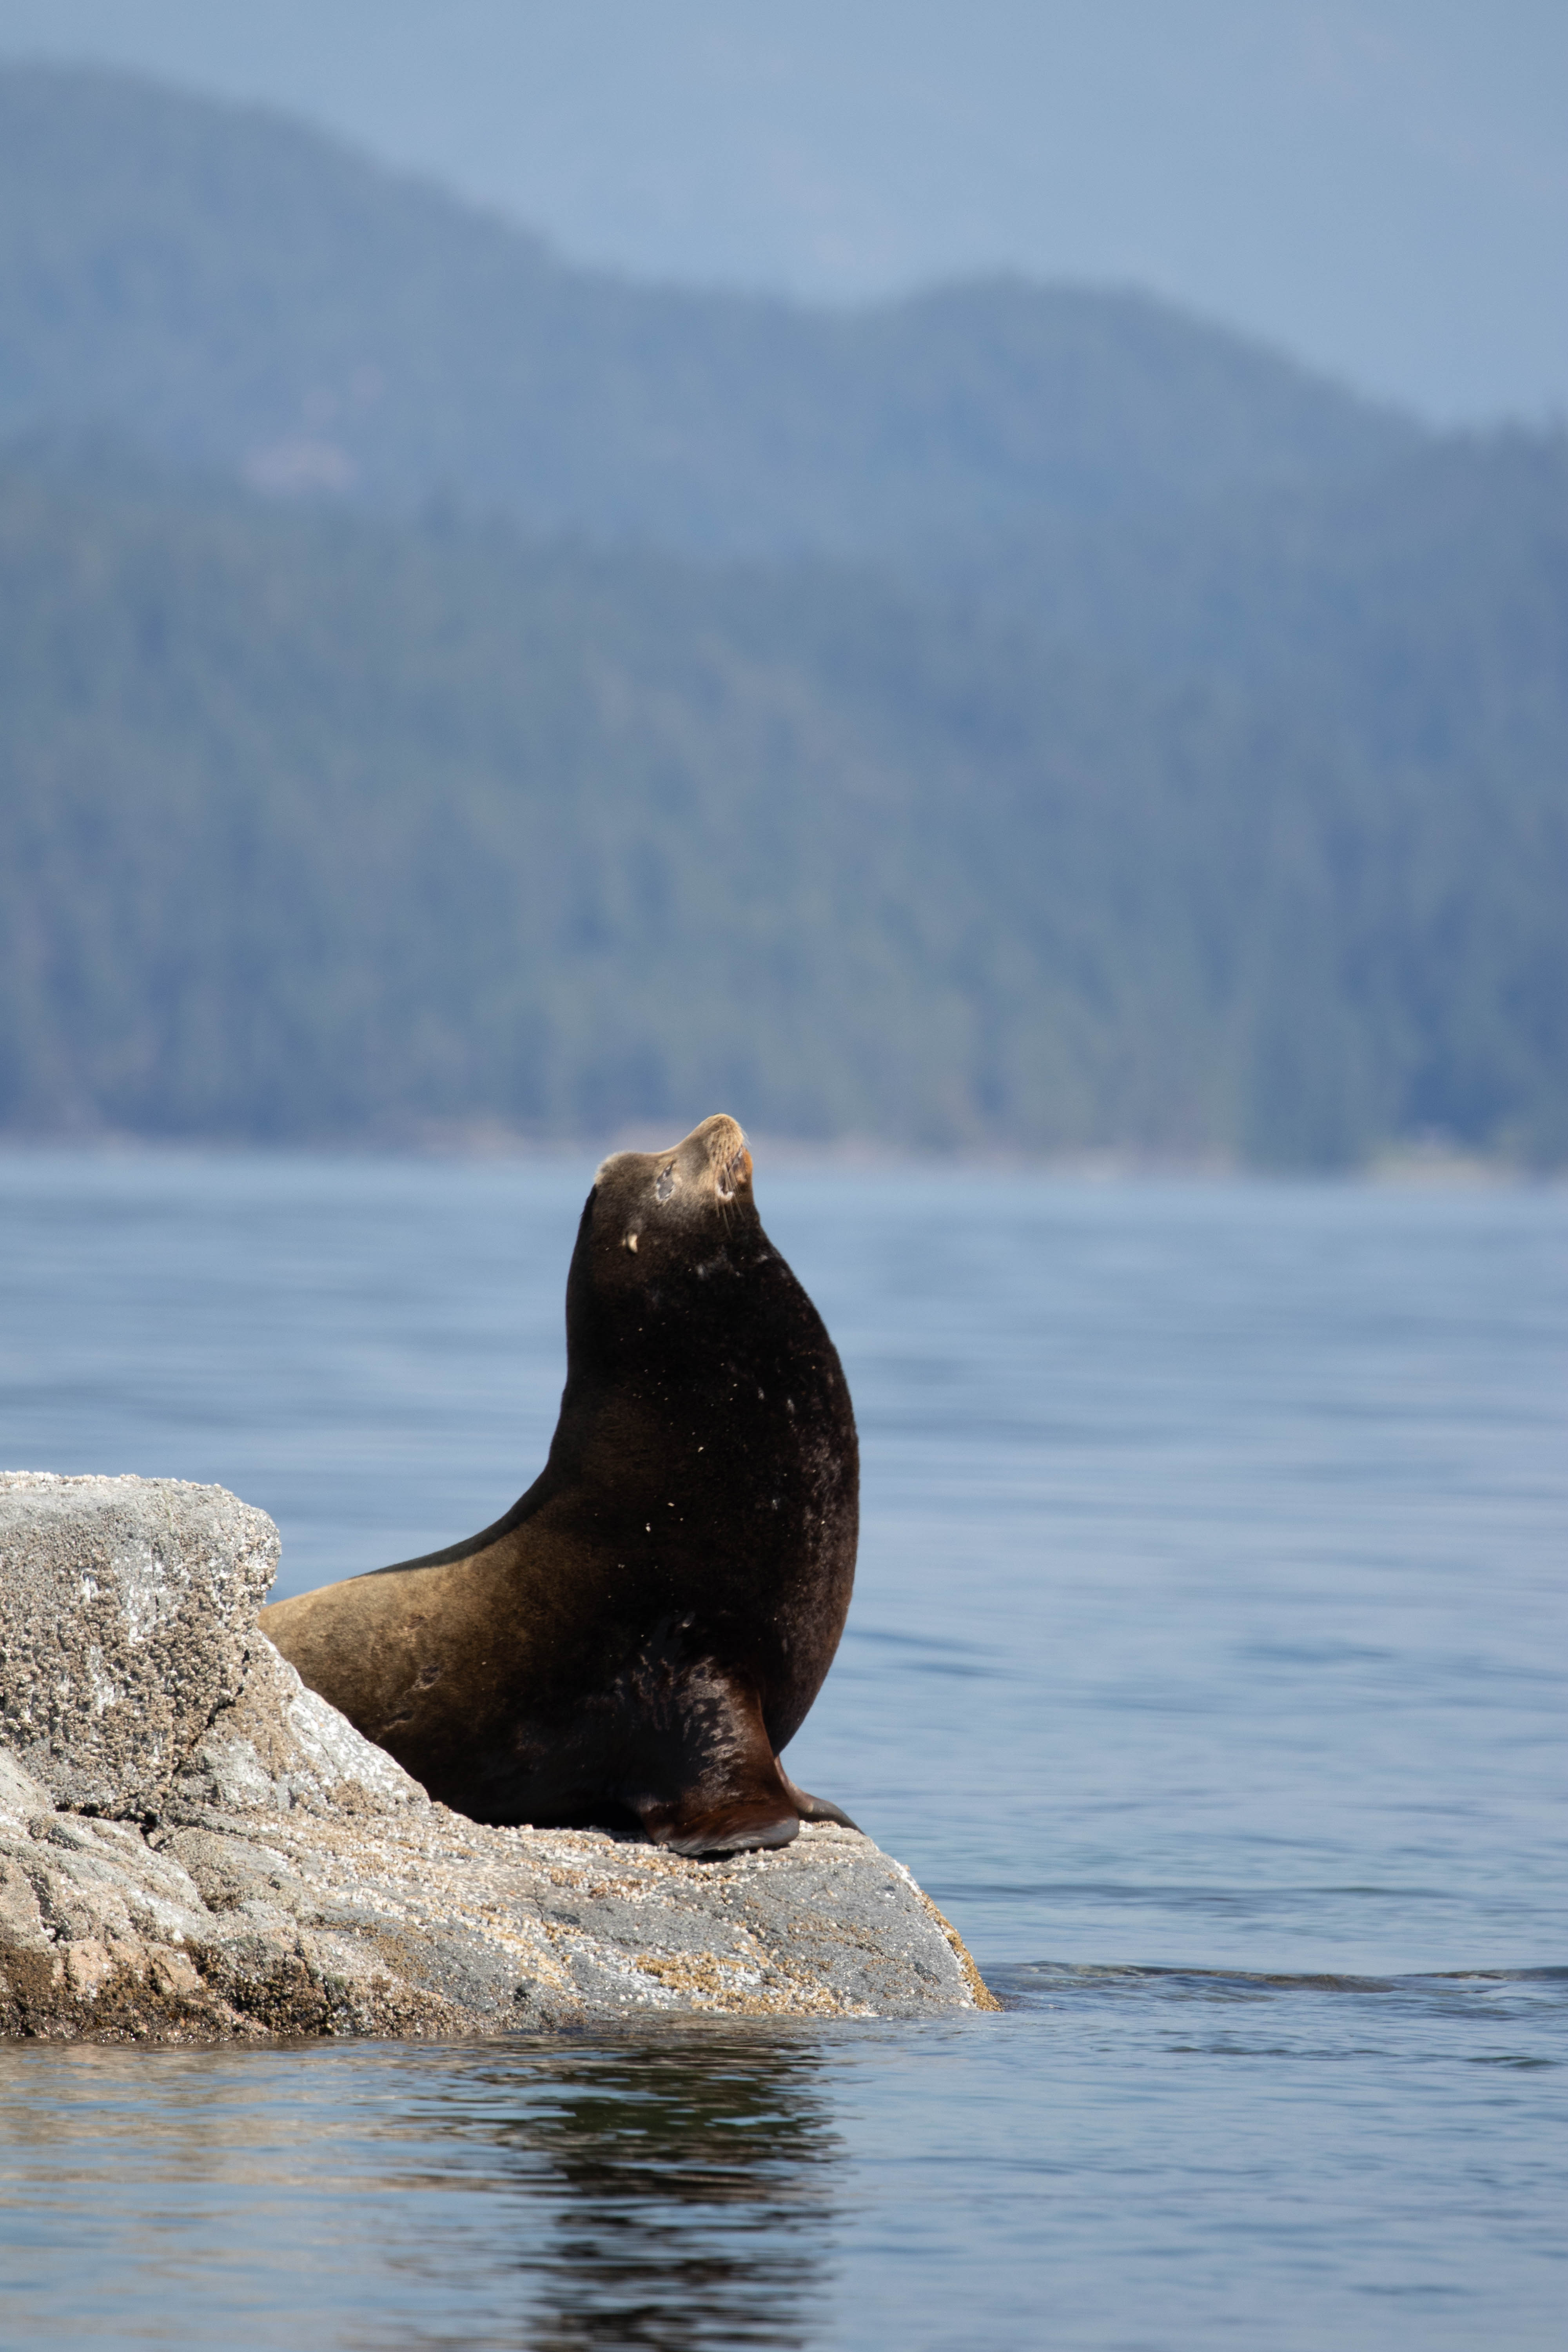 Discovery West Adventures, Whale Watching Campbell River, BC, Brown's Bay Resort, Sea Lions, California Sea Lion